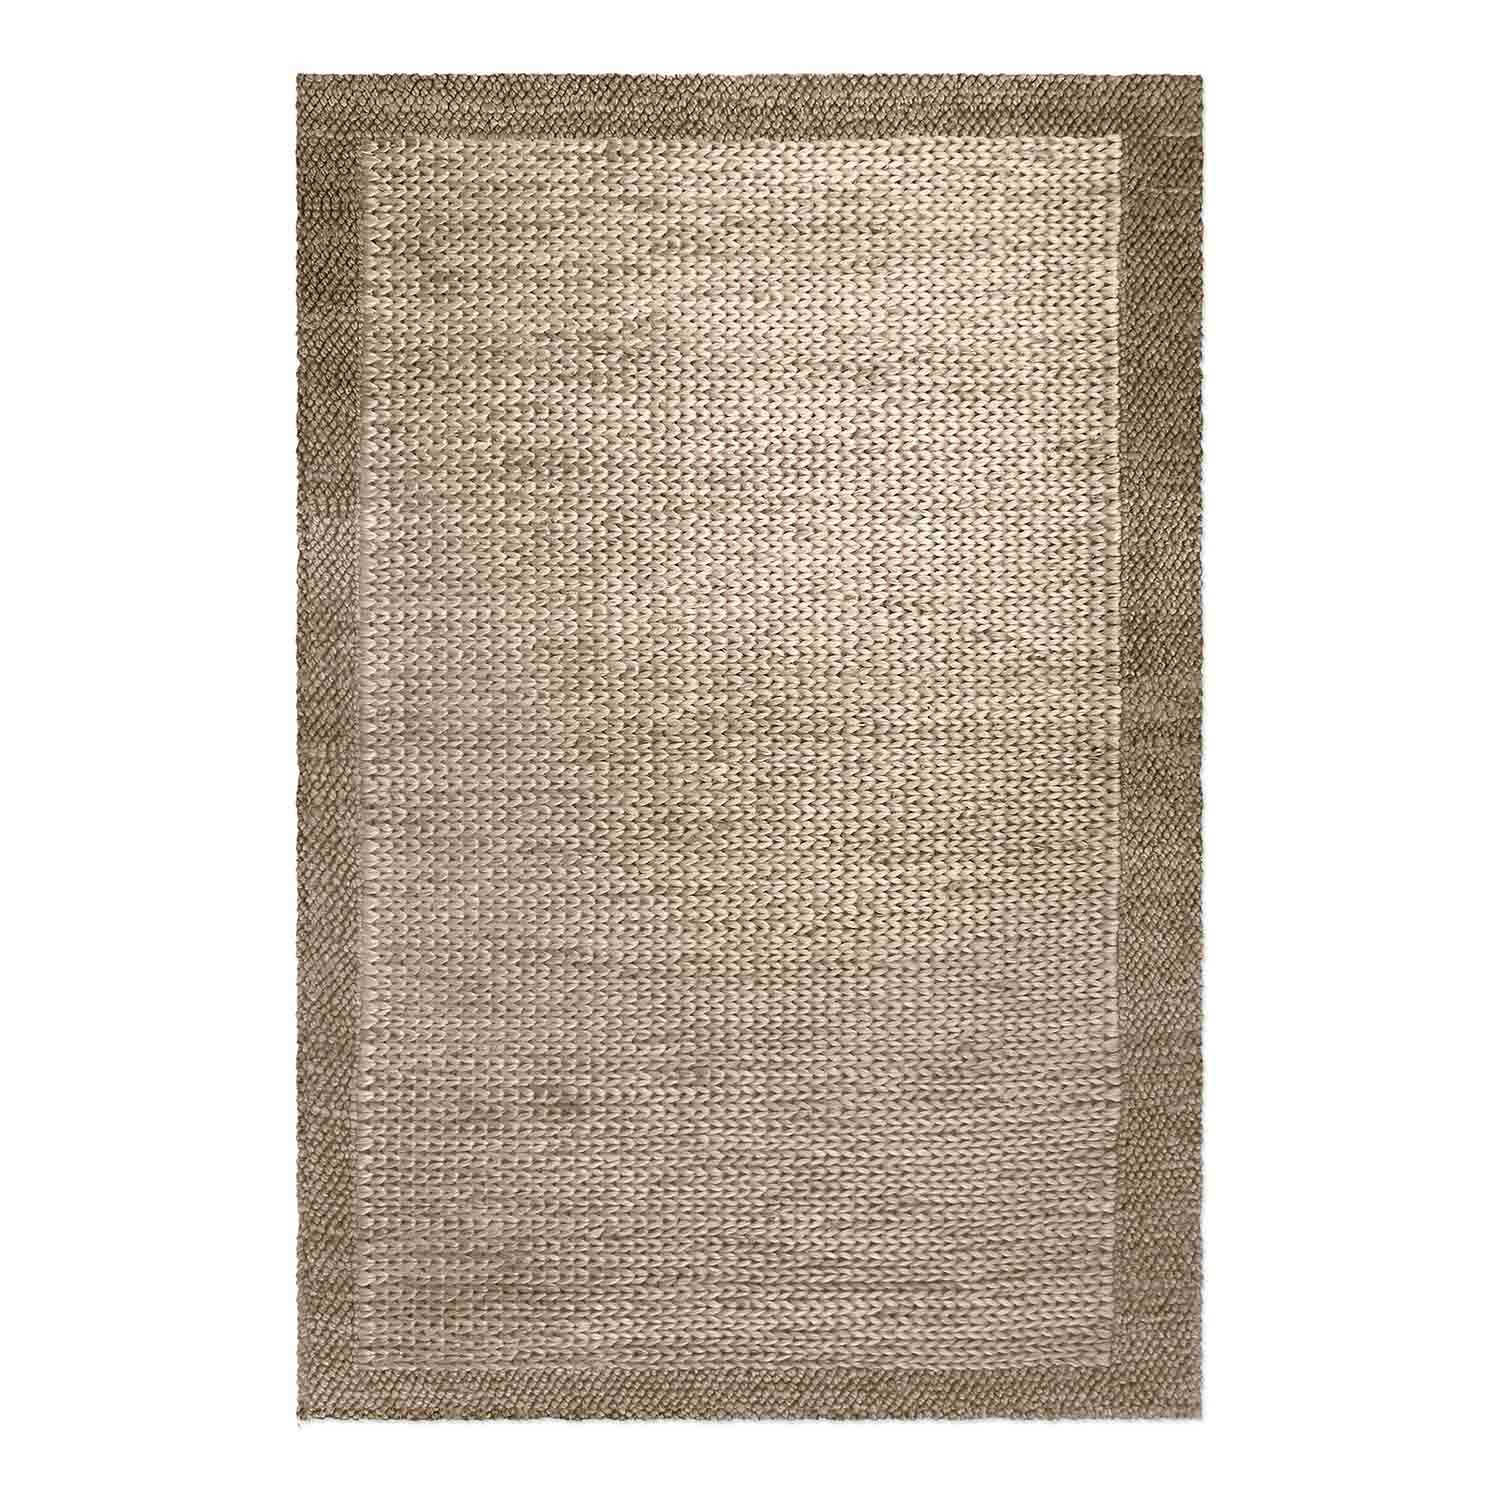 Uttermost Hana 8 x 10 Rug - Natural